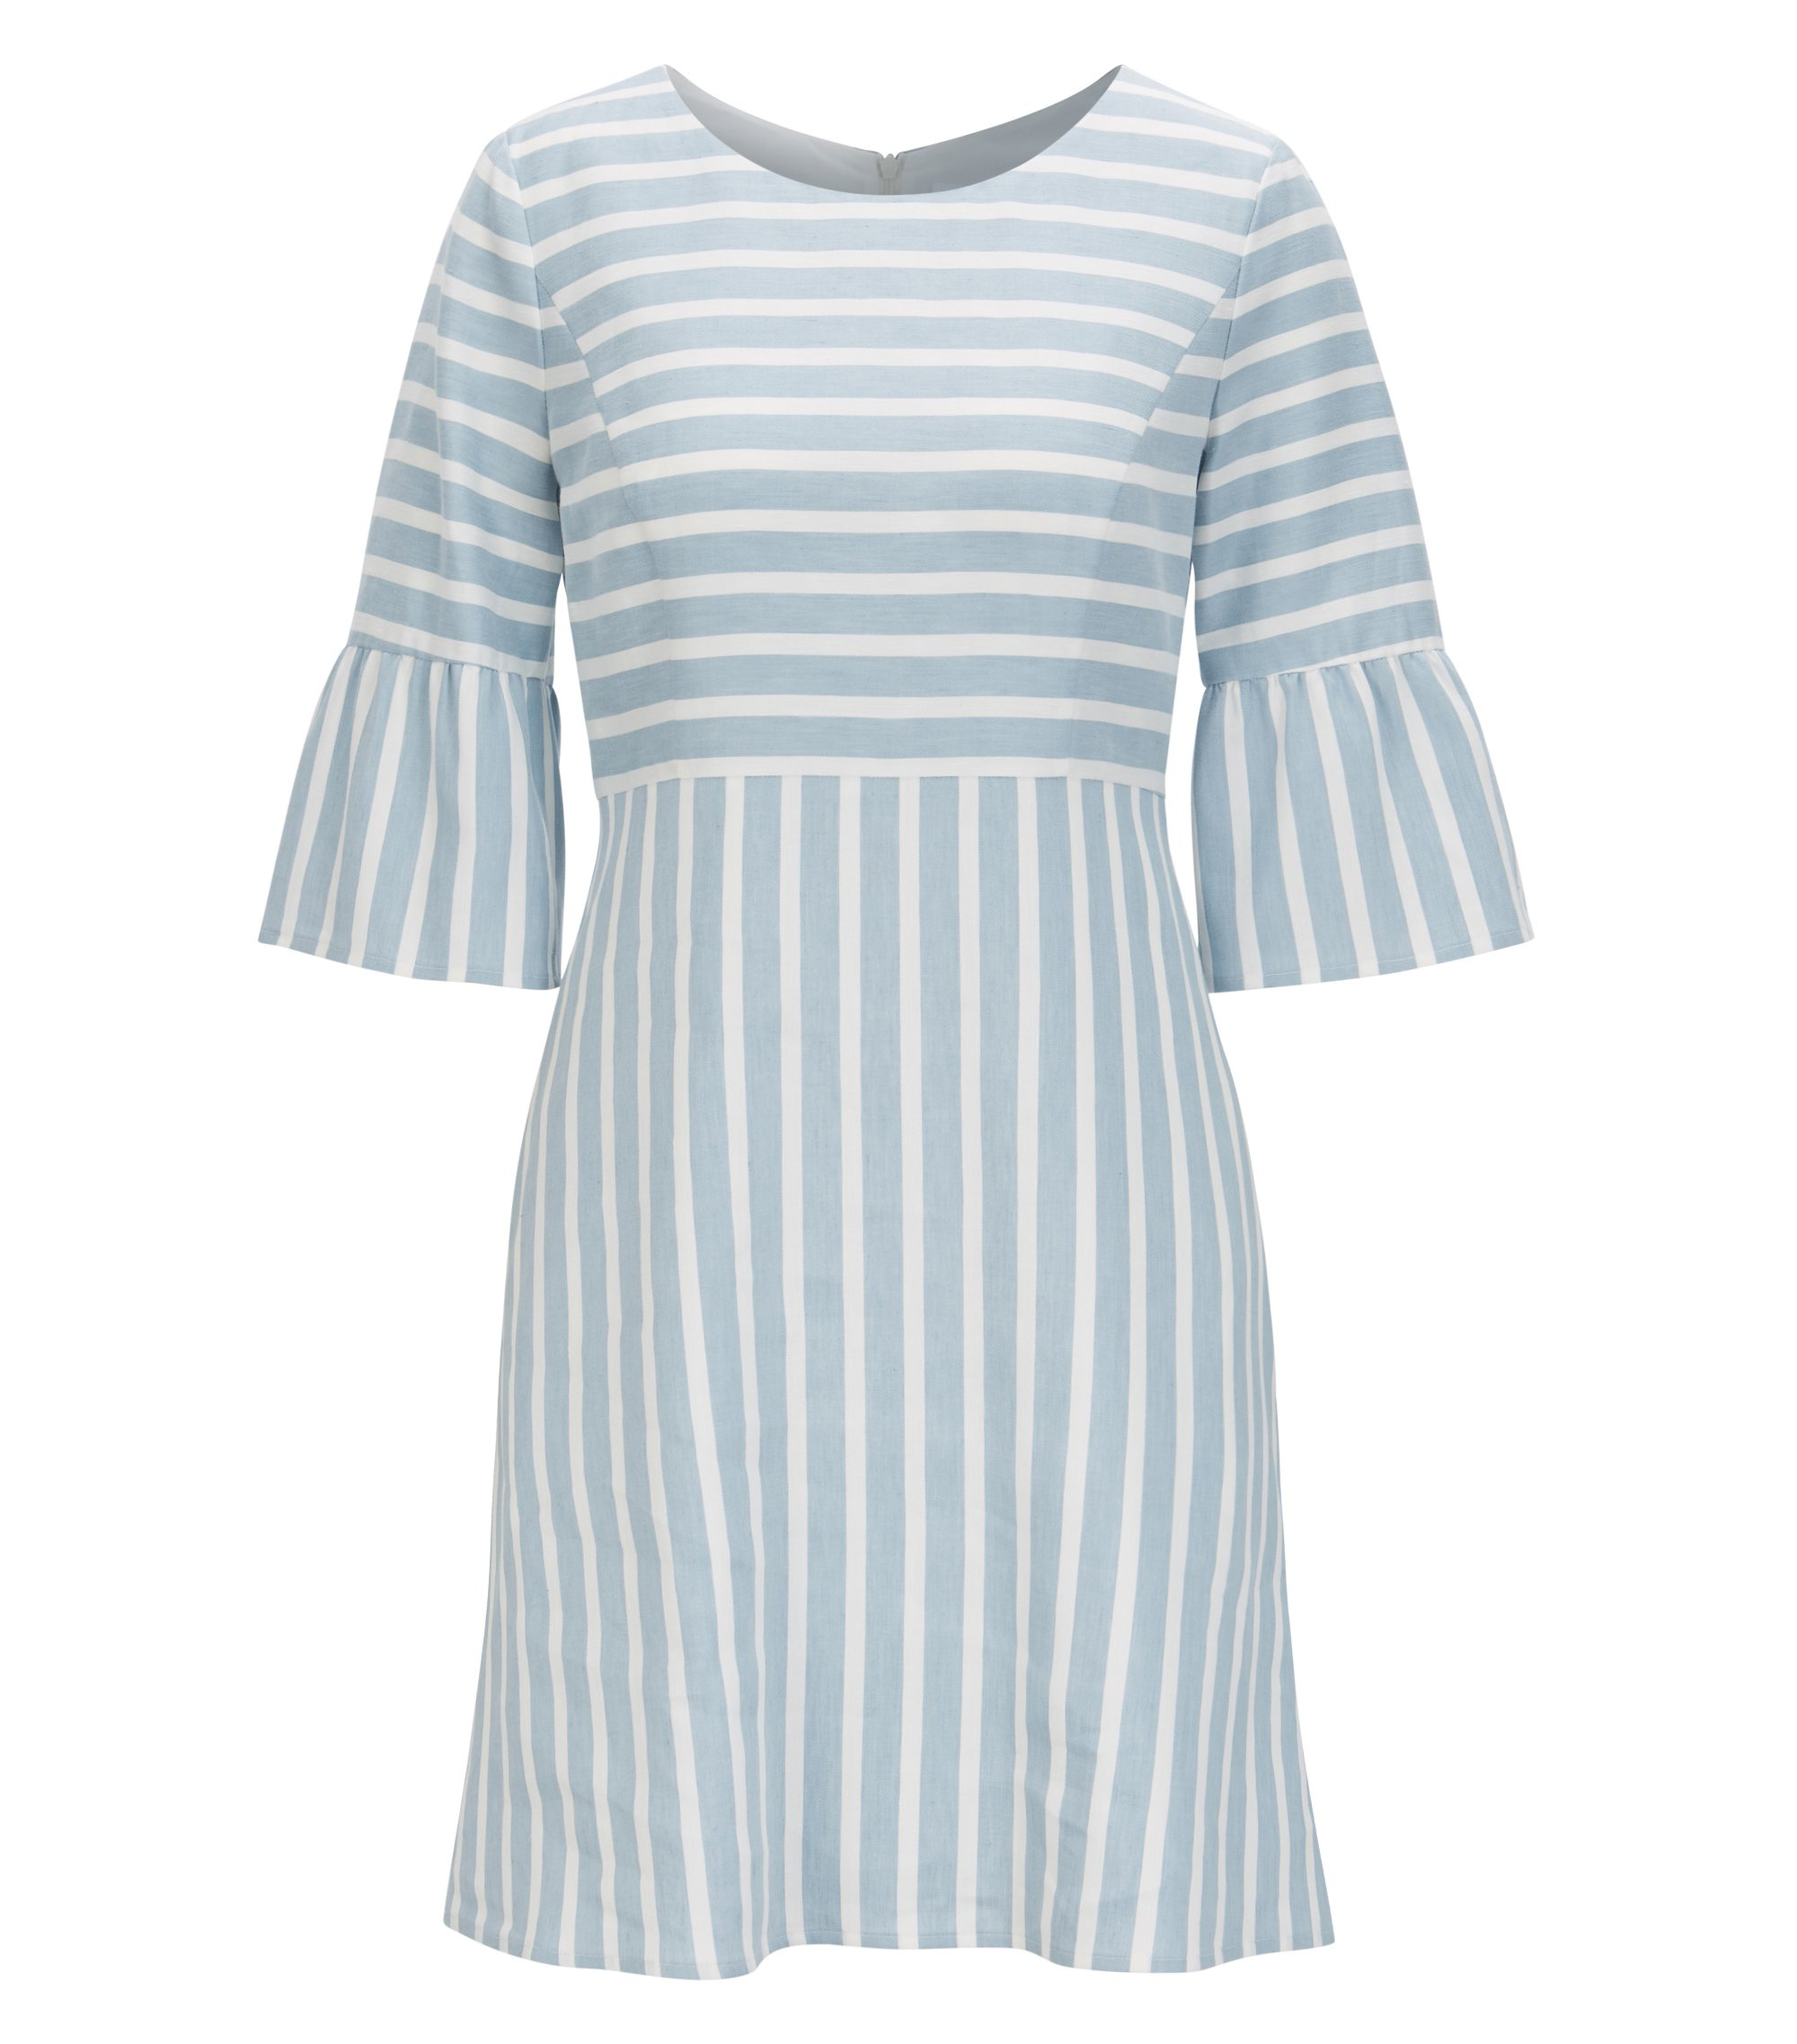 Waisted dress in a striped linen blend, Gemustert